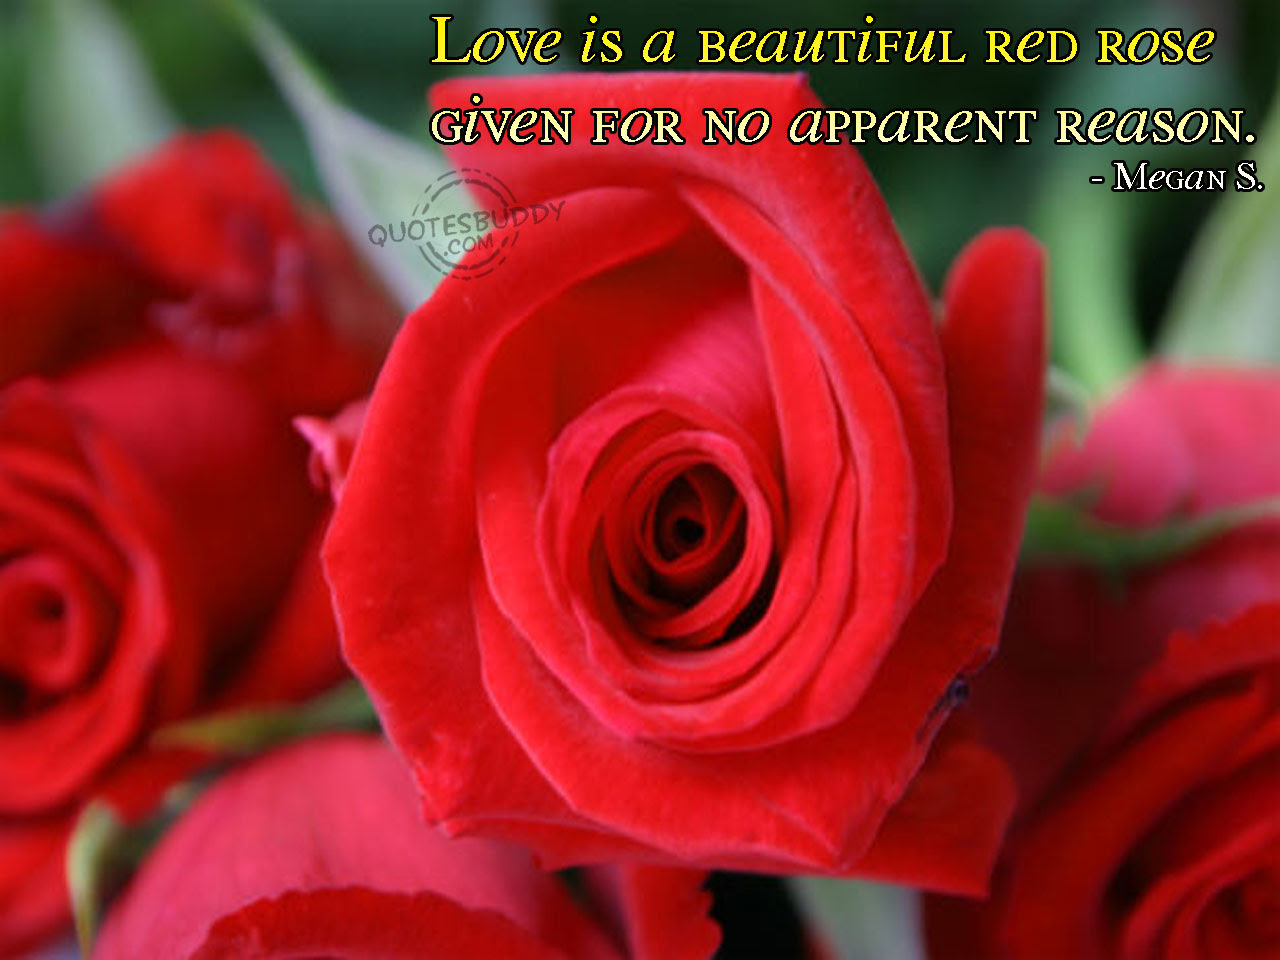 Quotes About Red Rose 53 Quotes